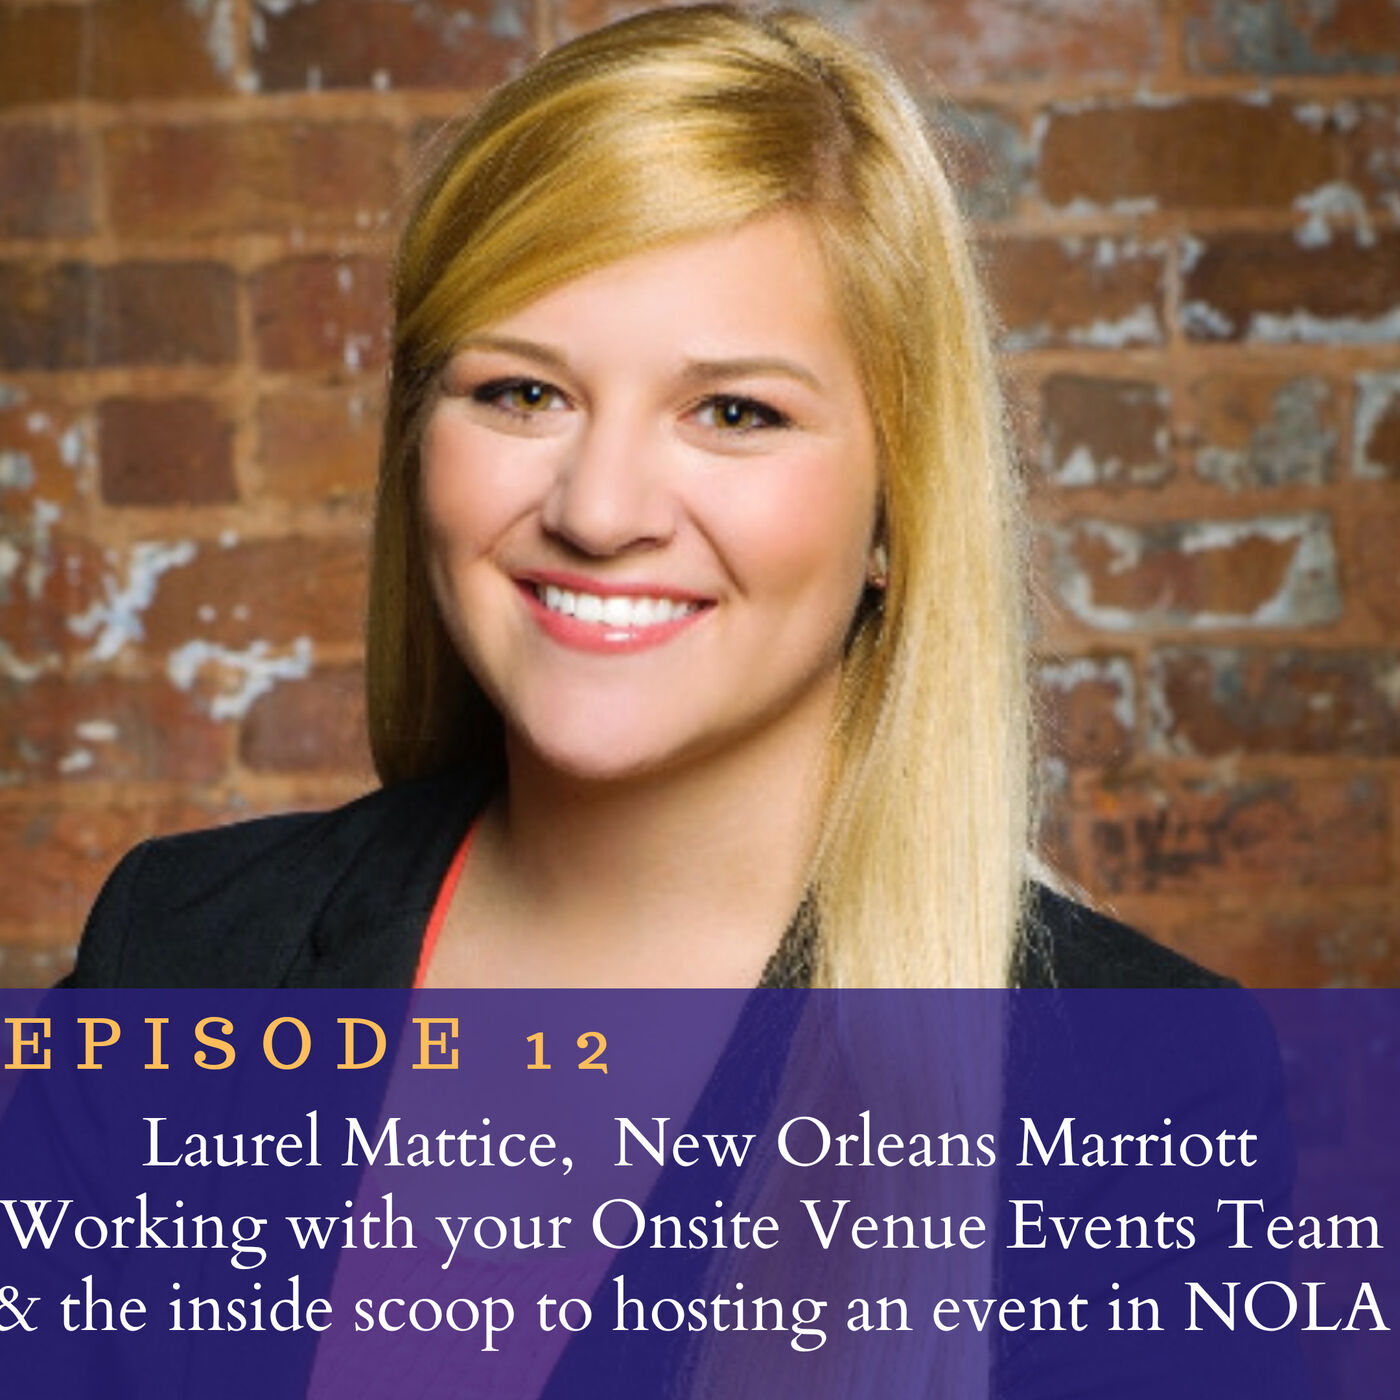 Episode 12. Working with your Onsite Venue Events Team and an Inside Scoop to Hosting an Event in NOLA.